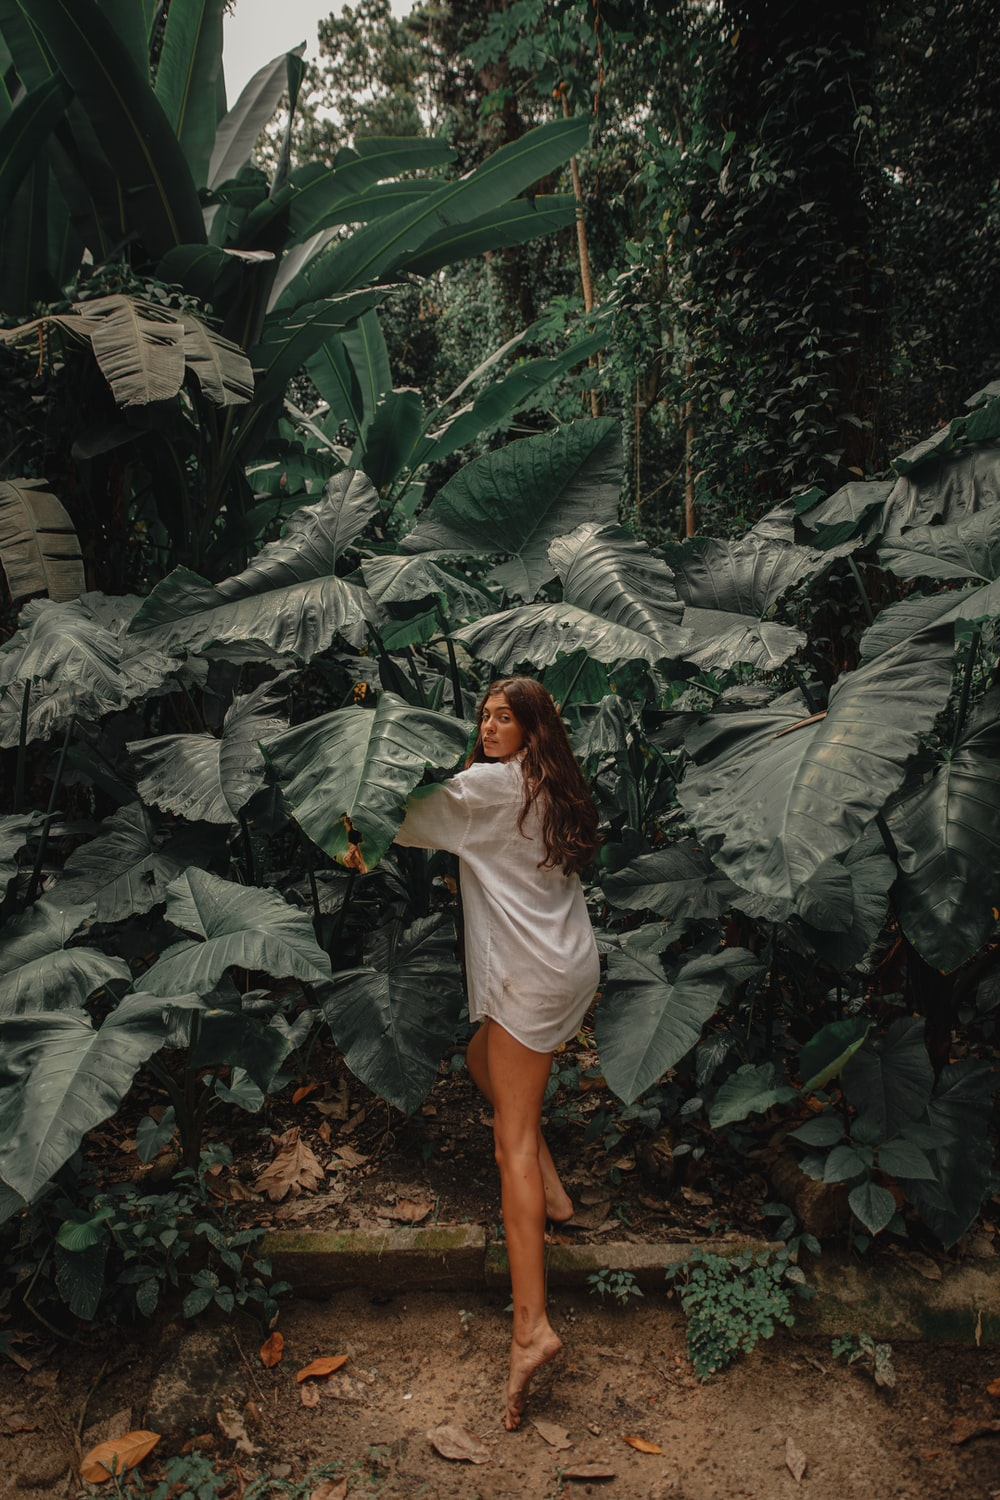 woman in white long sleeve shirt standing in the middle of green leaves